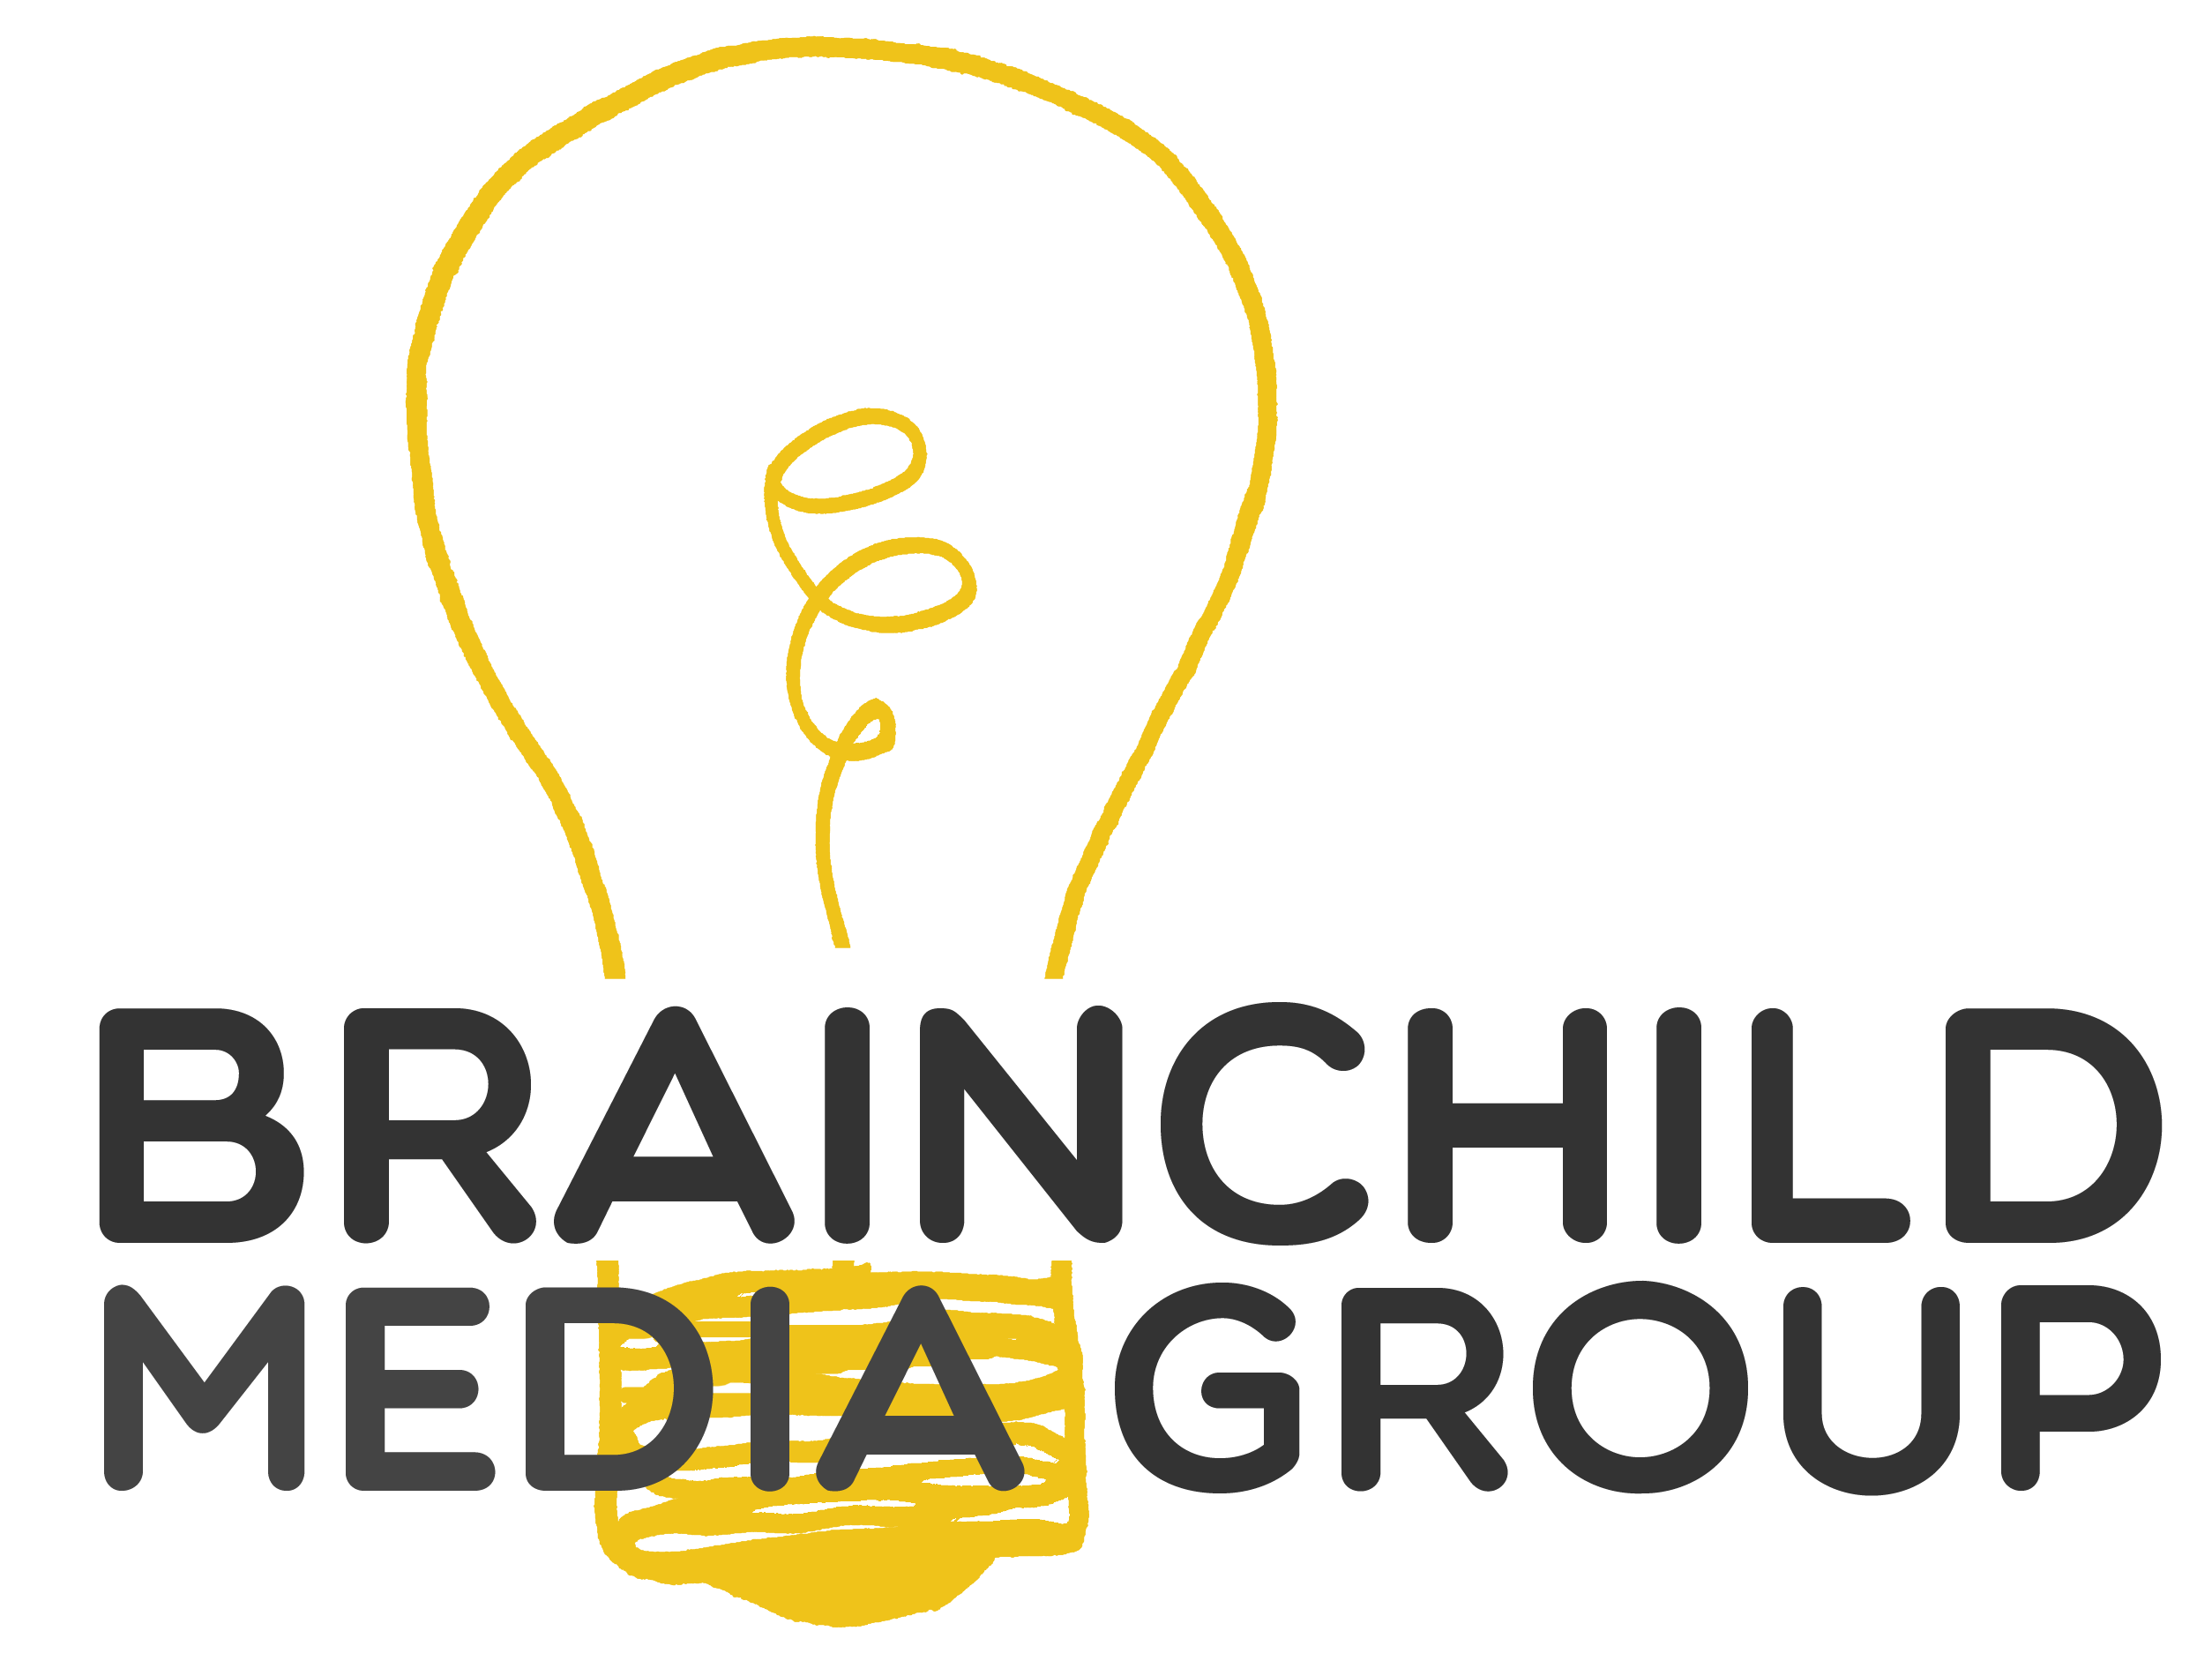 Brainchild Media Group